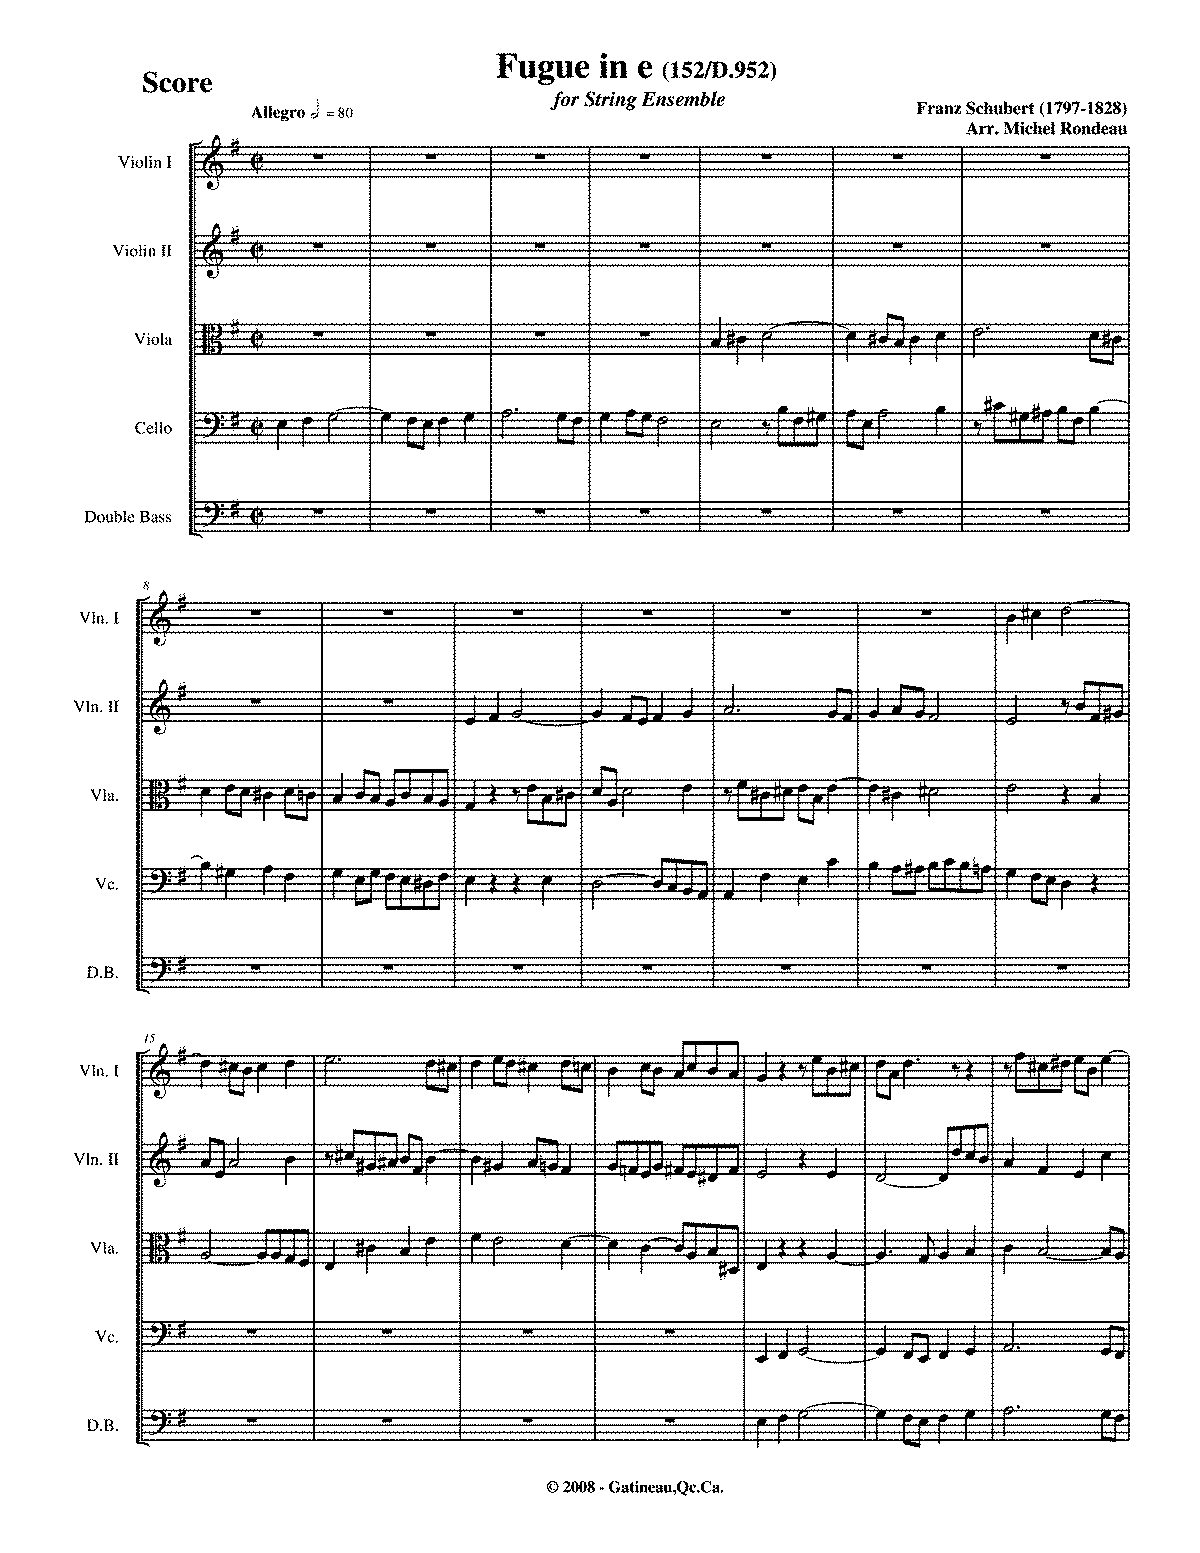 PMLP14748-SCHUBERT Fugue in e, D 952 arr strings.pdf